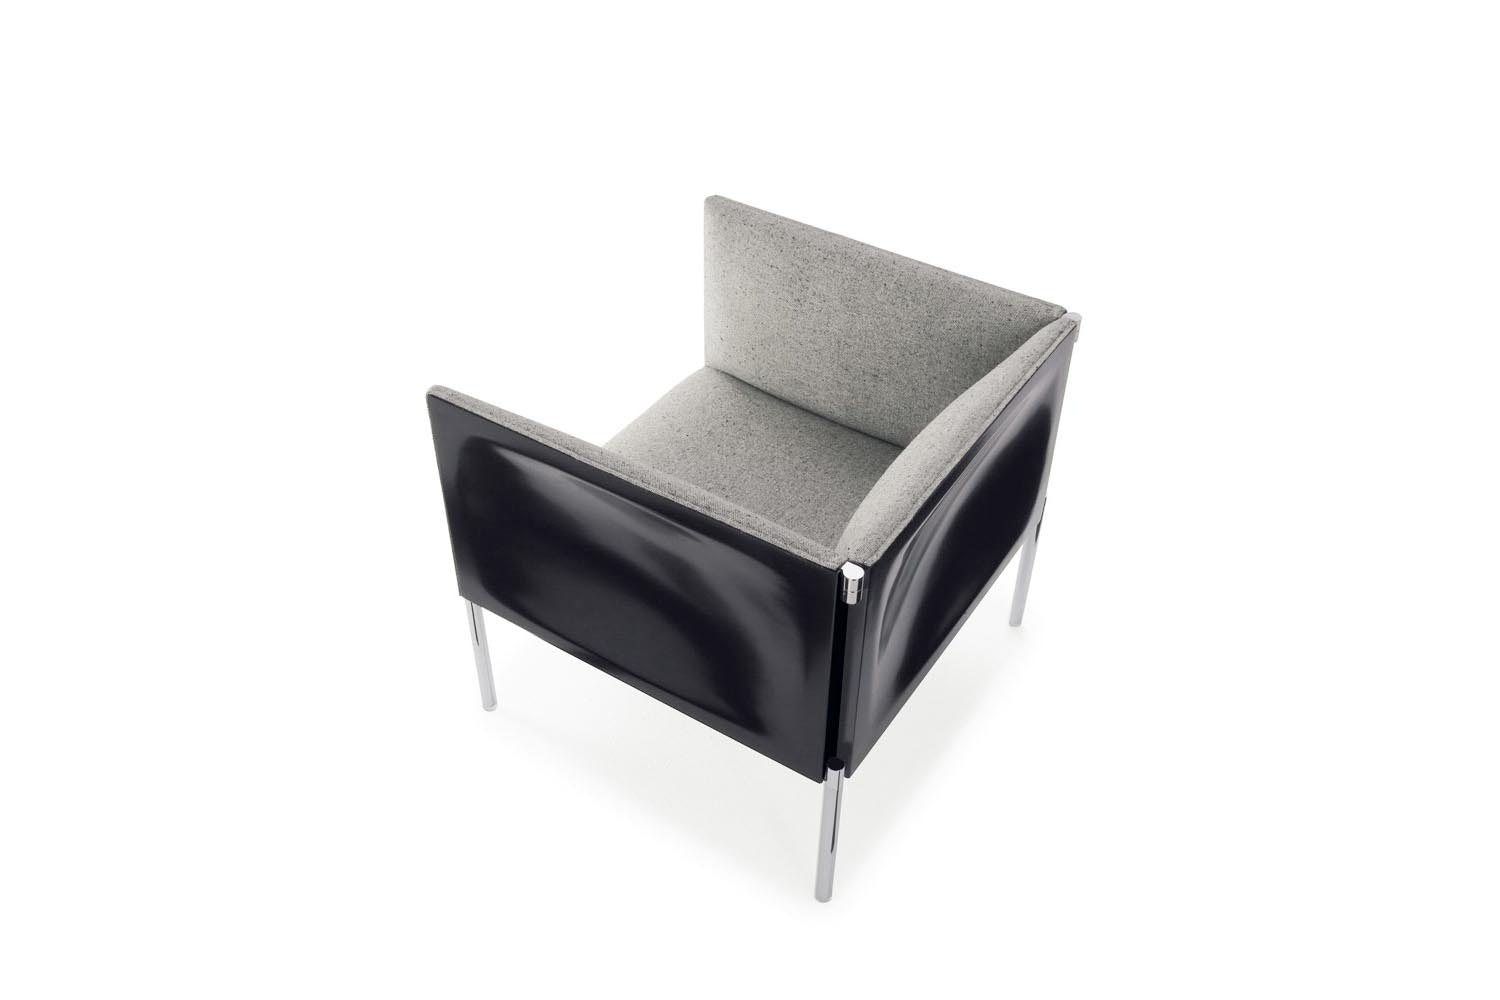 Hollow Armchair by Patricia Urquiola for B&B Italia Project